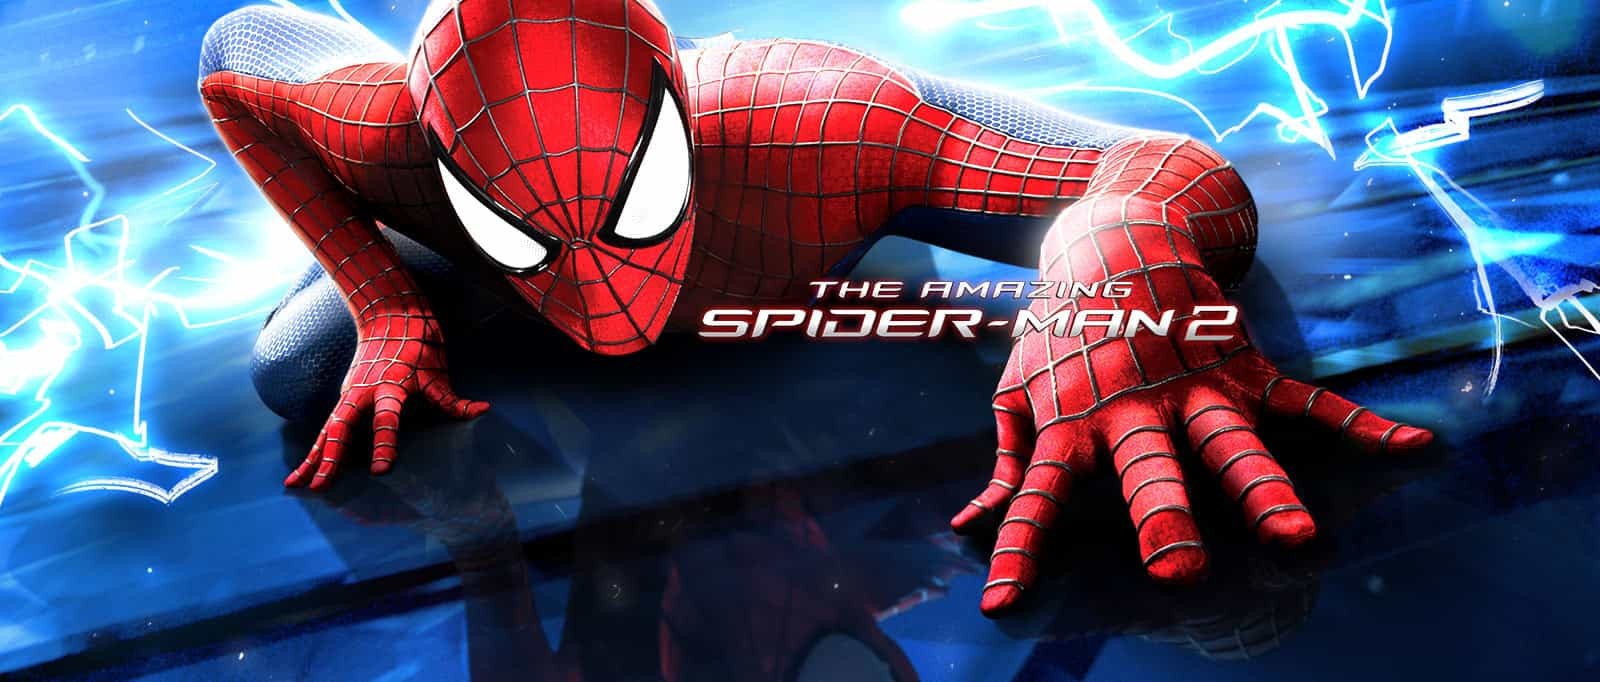 tai game the amazing spider-man 2